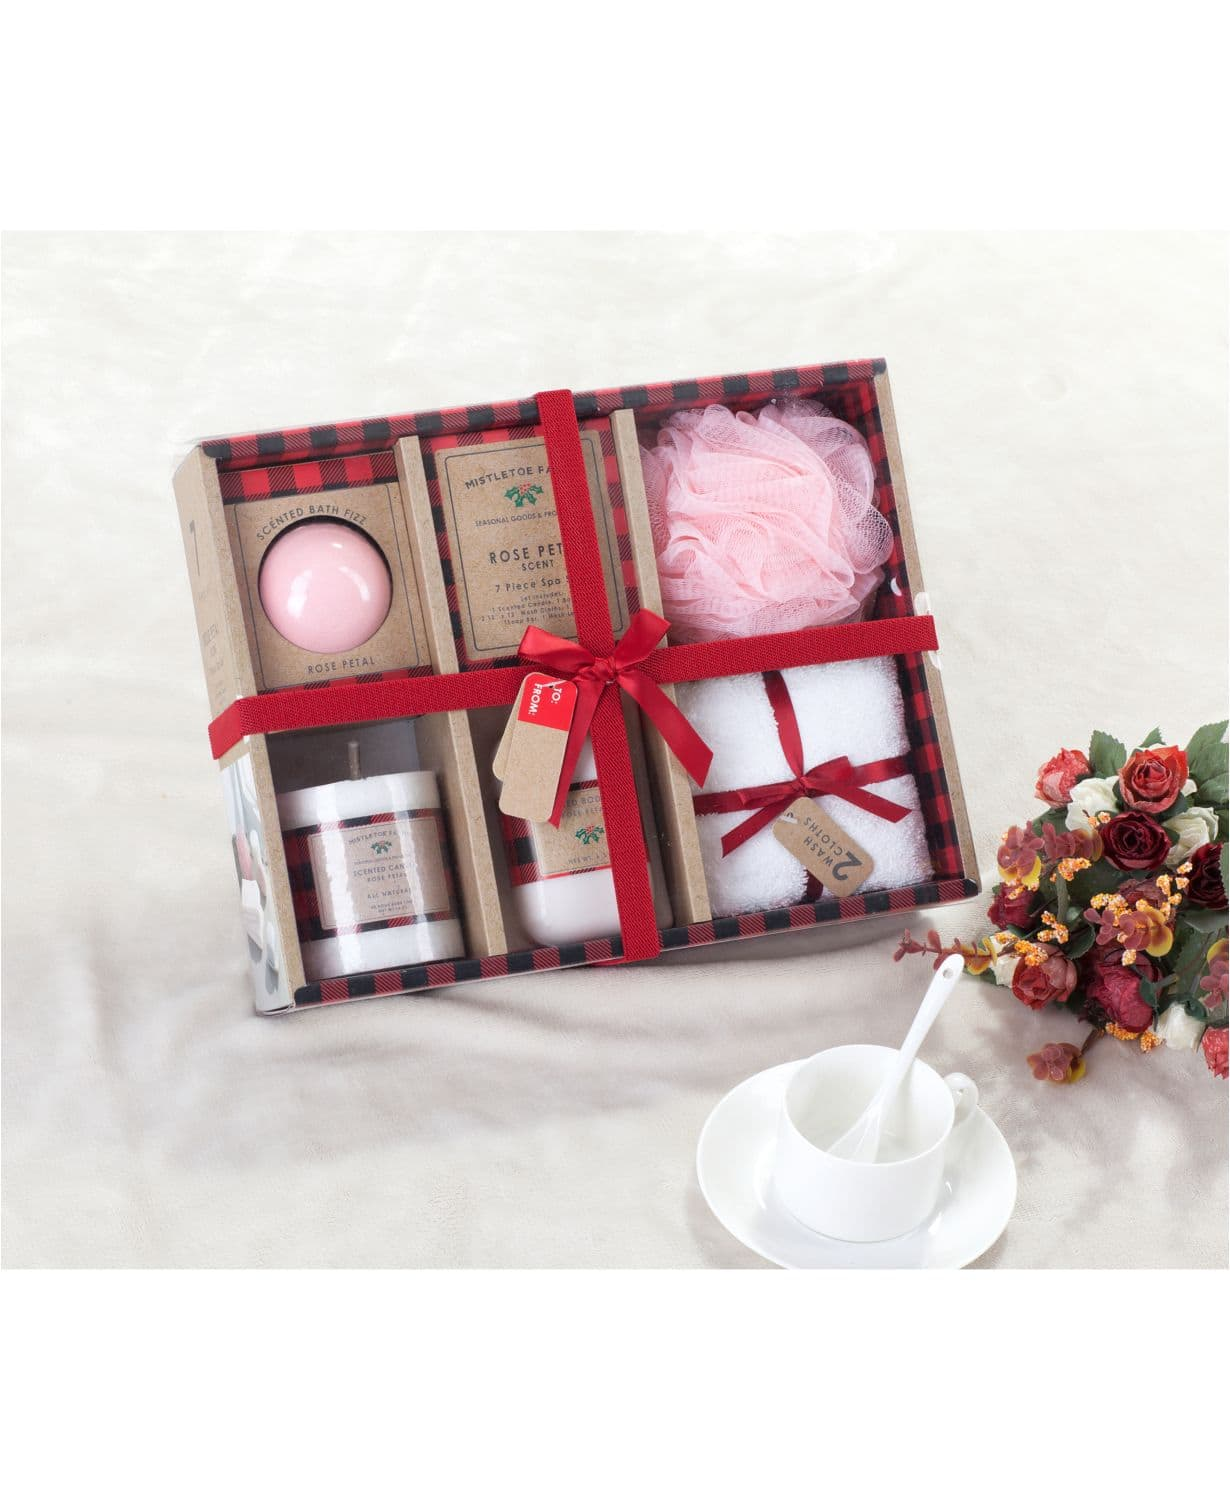 7-Piece Indecor Home Spa Bath Gift Set (Pink) $15 at Macy's w/ Free Store Pickup